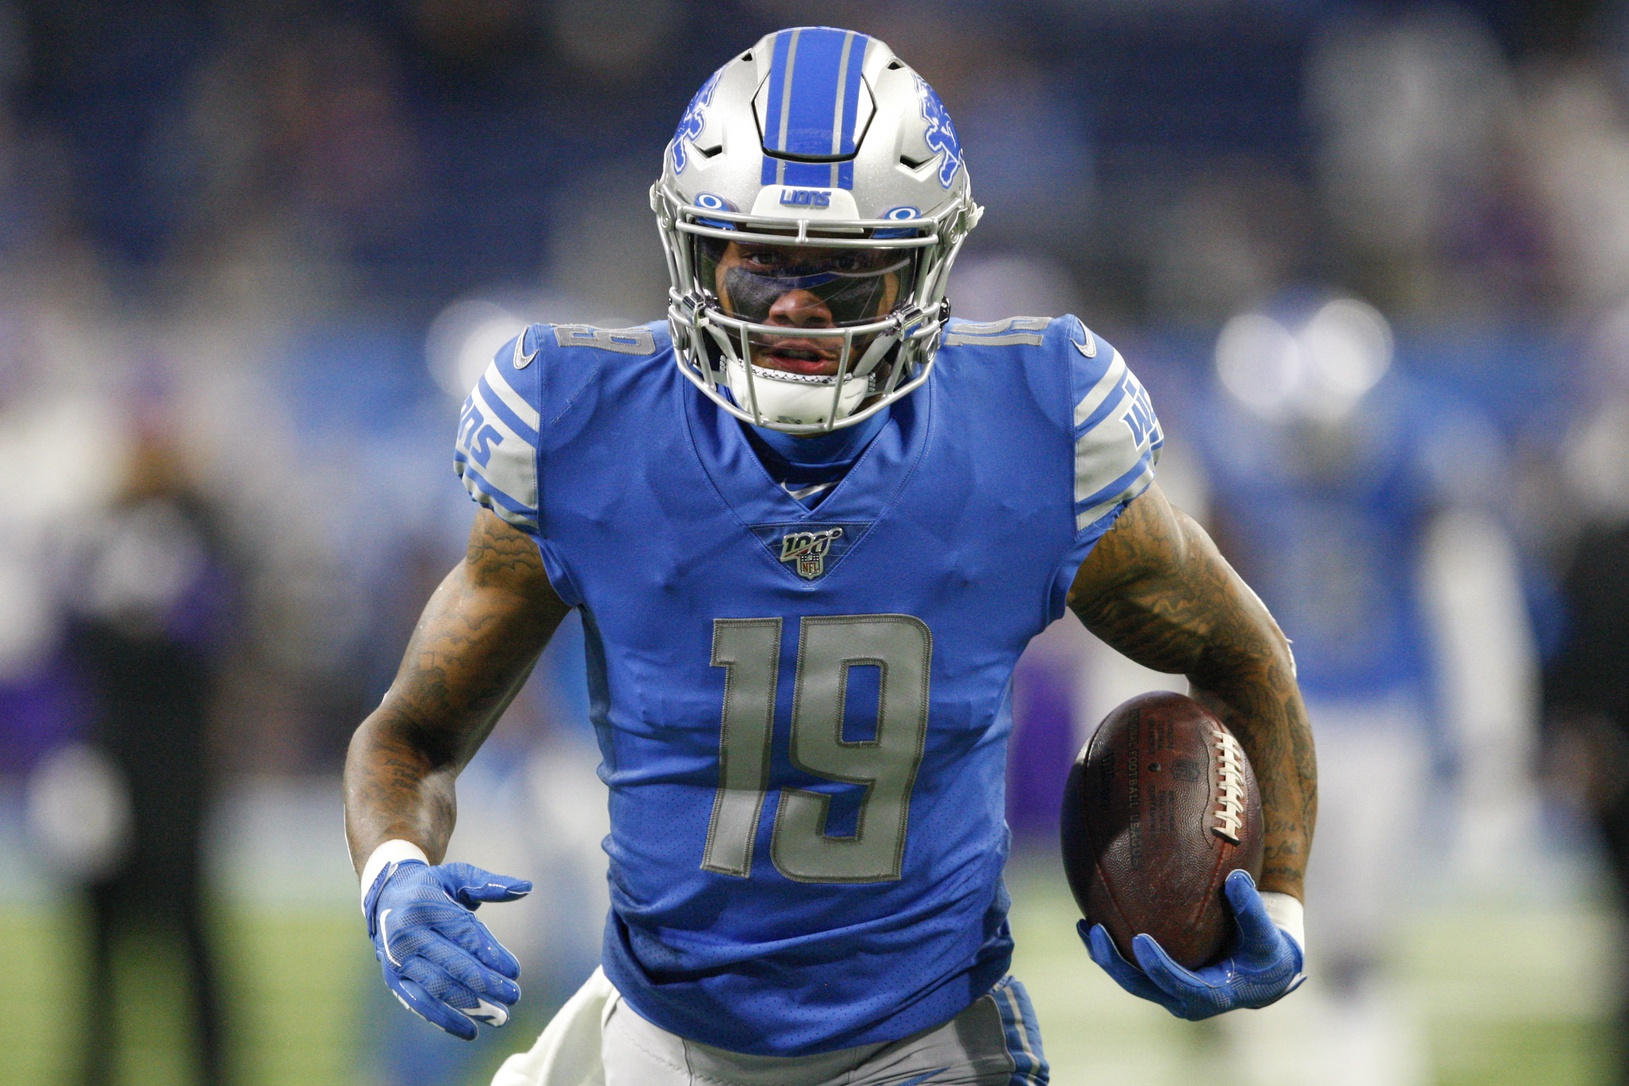 Kenny Golladay 2020 Player Profile